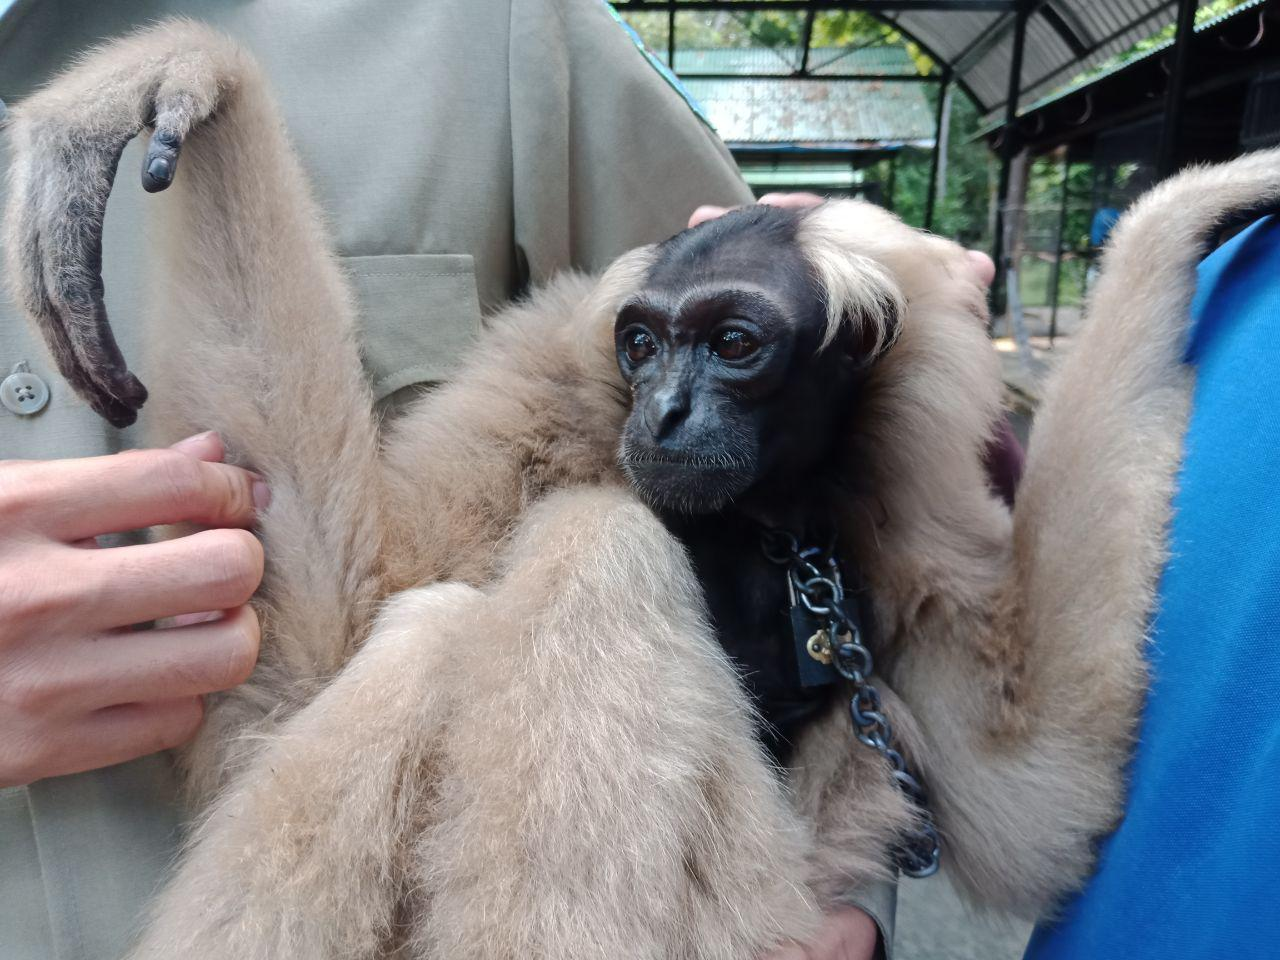 Endangered gibbon rescued thanks to Facebook community